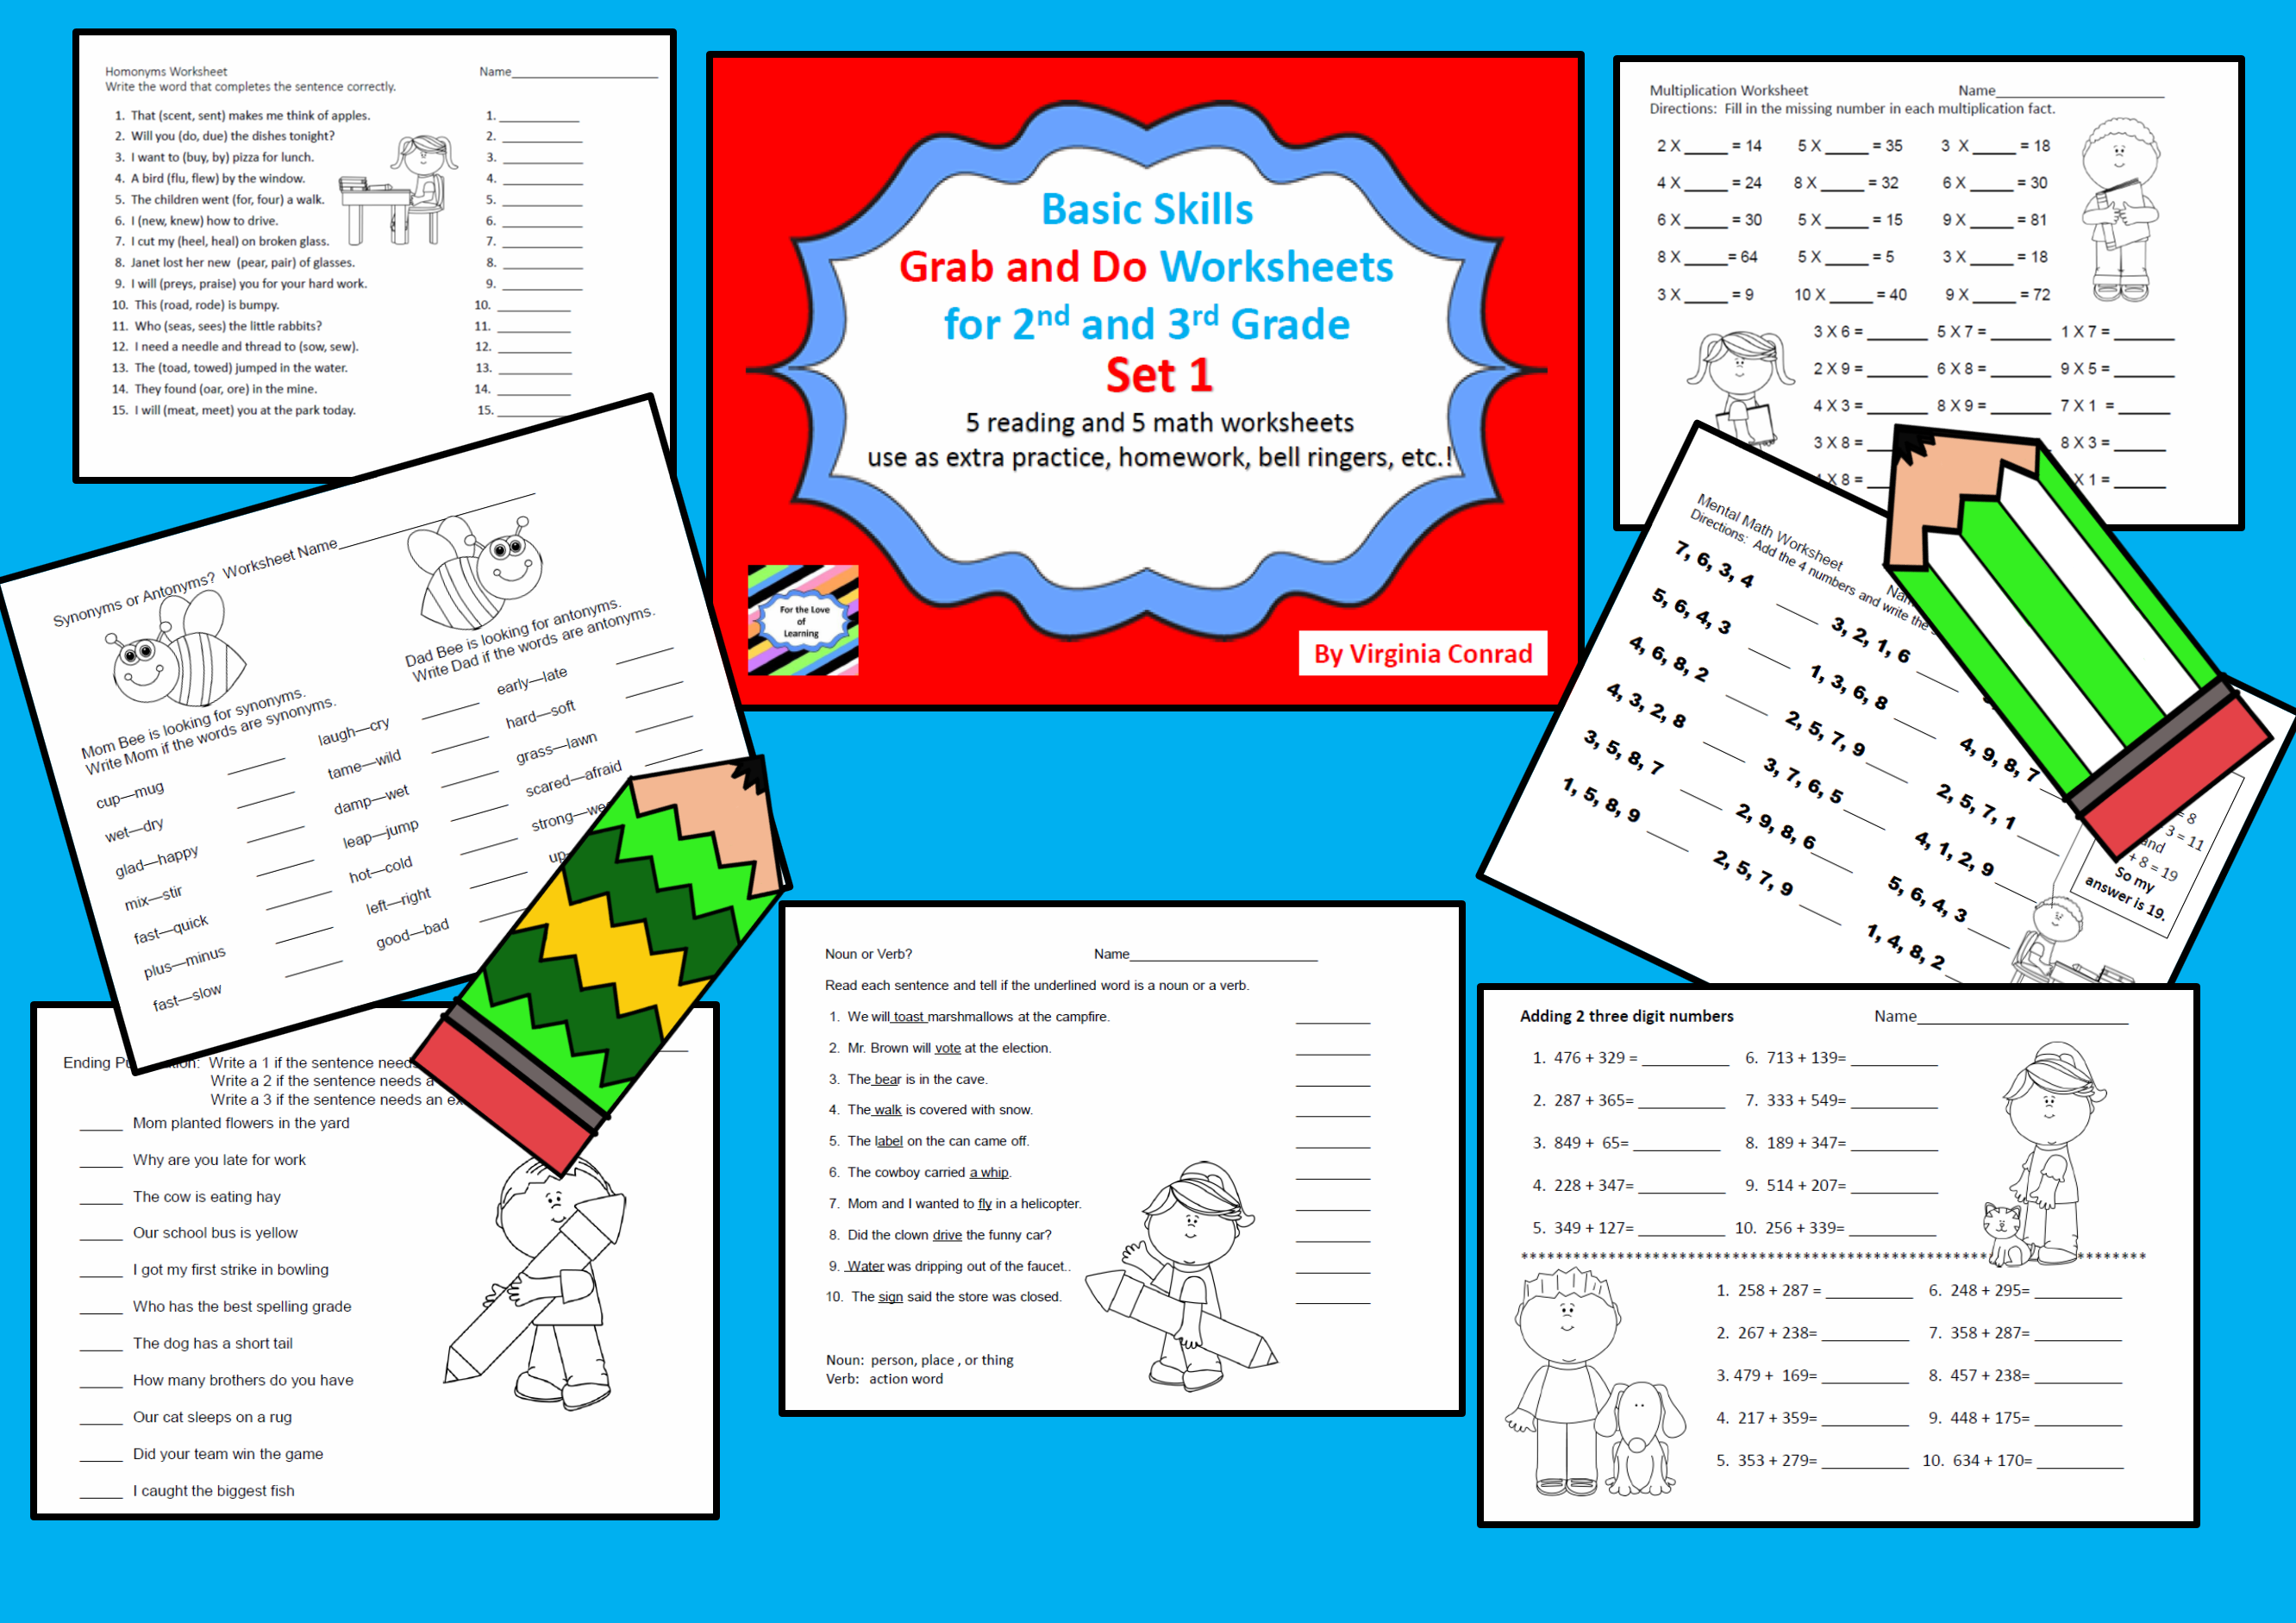 Basic Skills Grab And Do Worksheets For 2nd And 3rd Grades